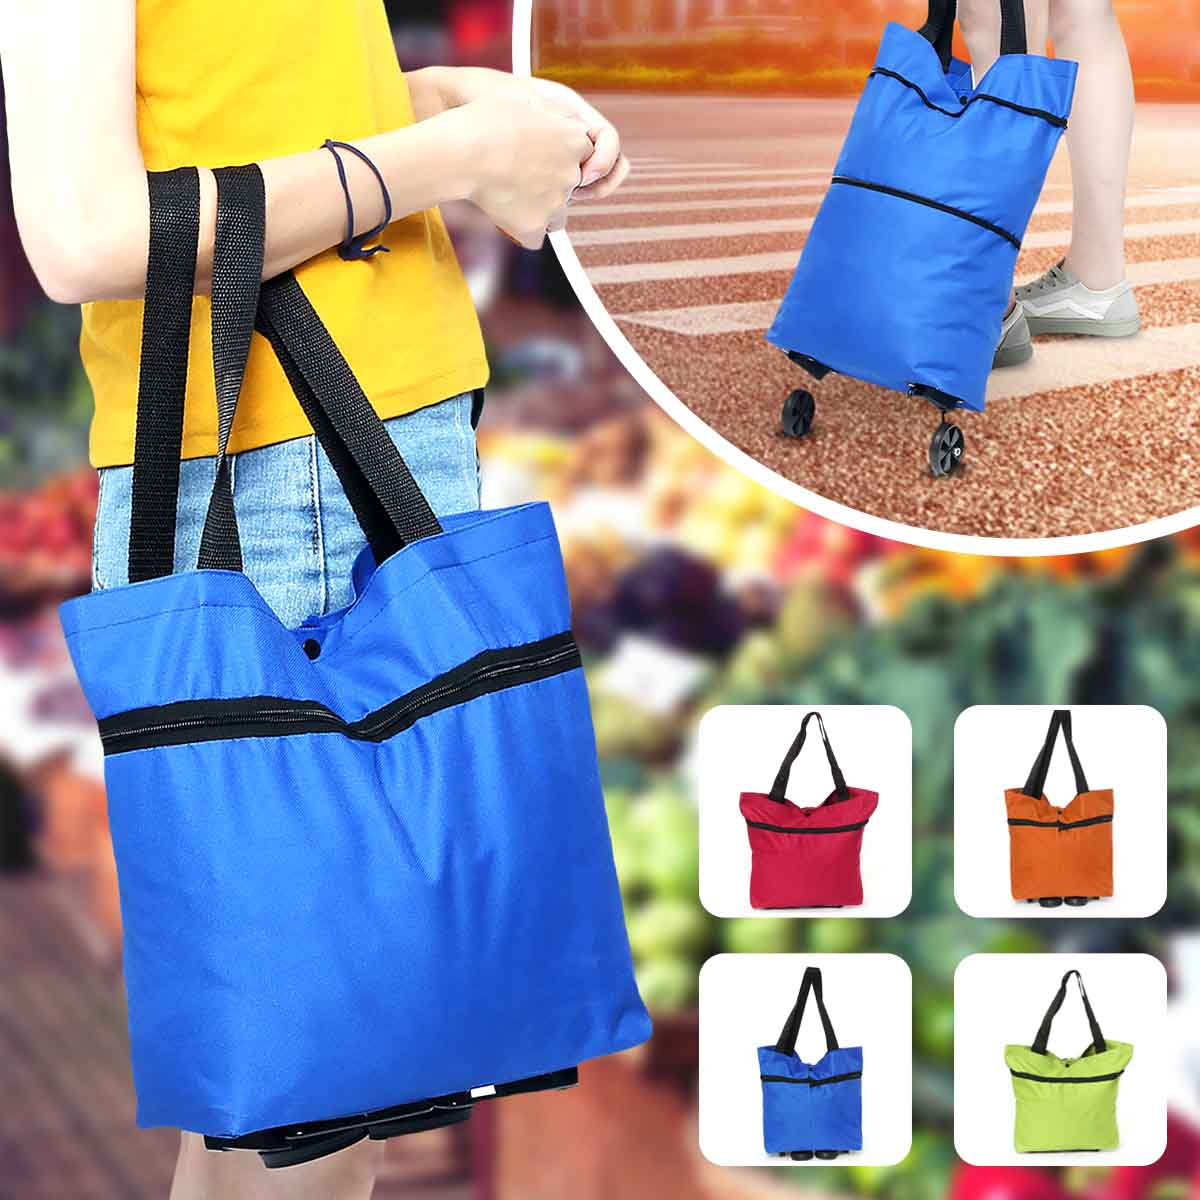 Foldable Women Shopping Cart Bag Portable Shopping Trolley Bag With Wheels Foldable Cart Rolling Grocery Colorful Supermarket